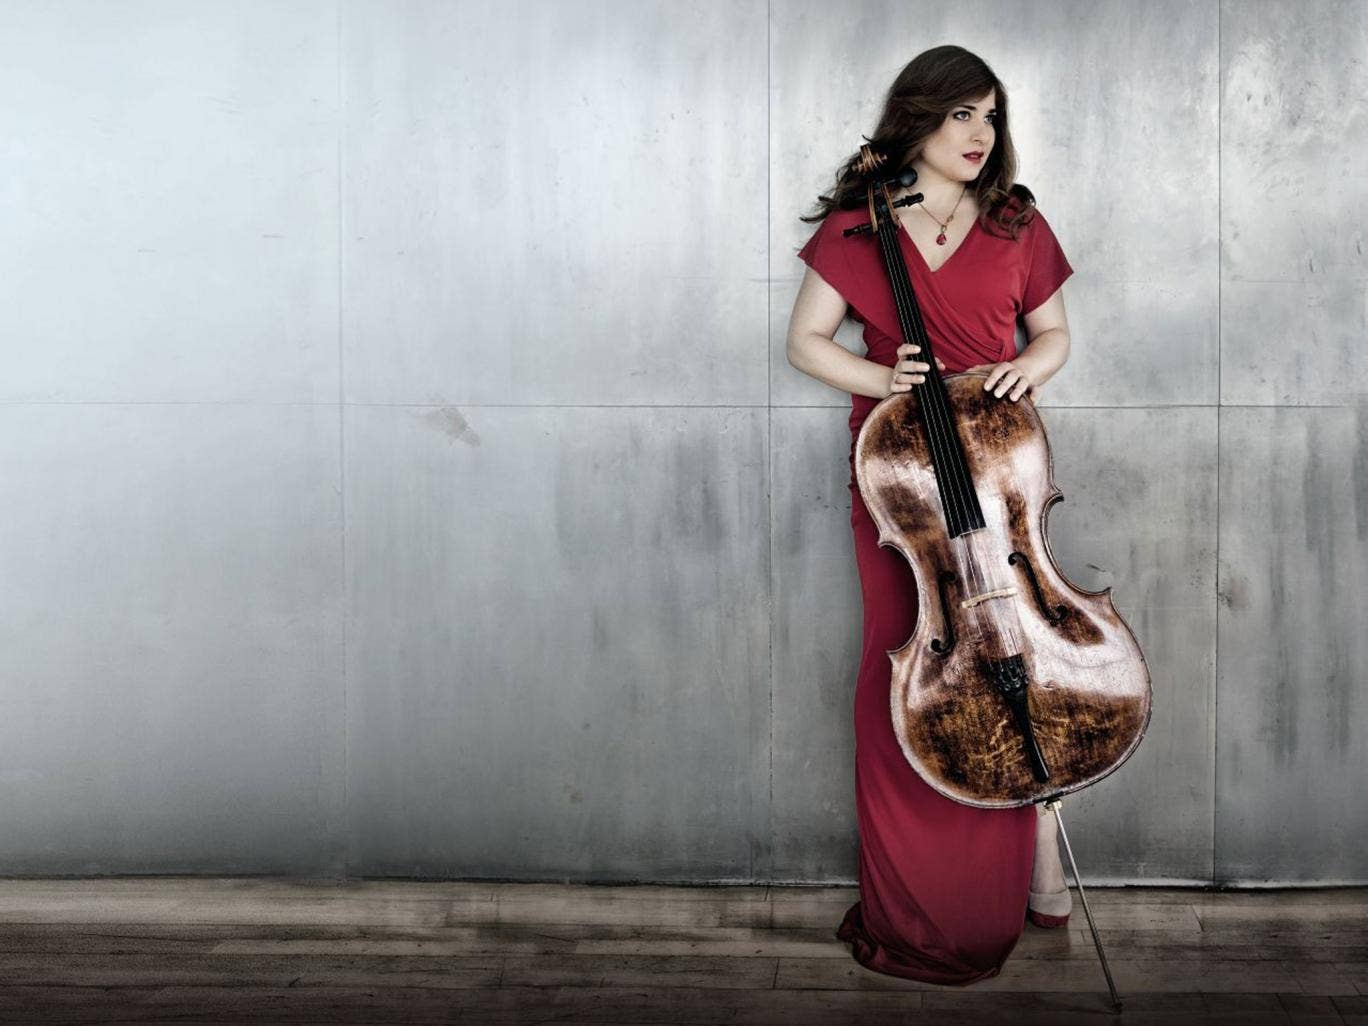 Idol moments: Alisa Weilerstein adopted du Pré as her model but she's wary of being branded